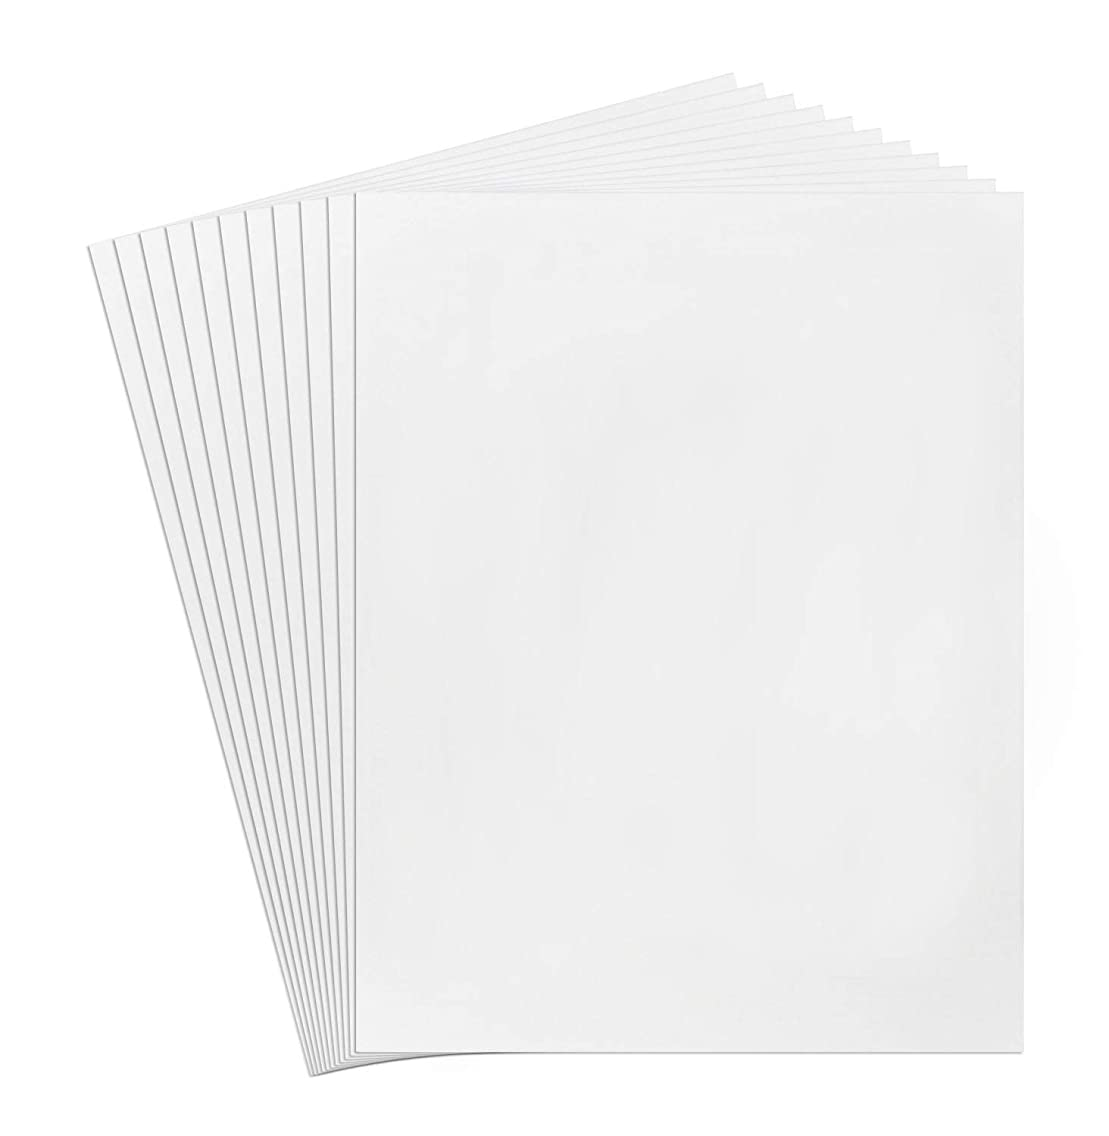 Golden State Art, 10-Pack, 11x14 Backing Boards for Picture Framing